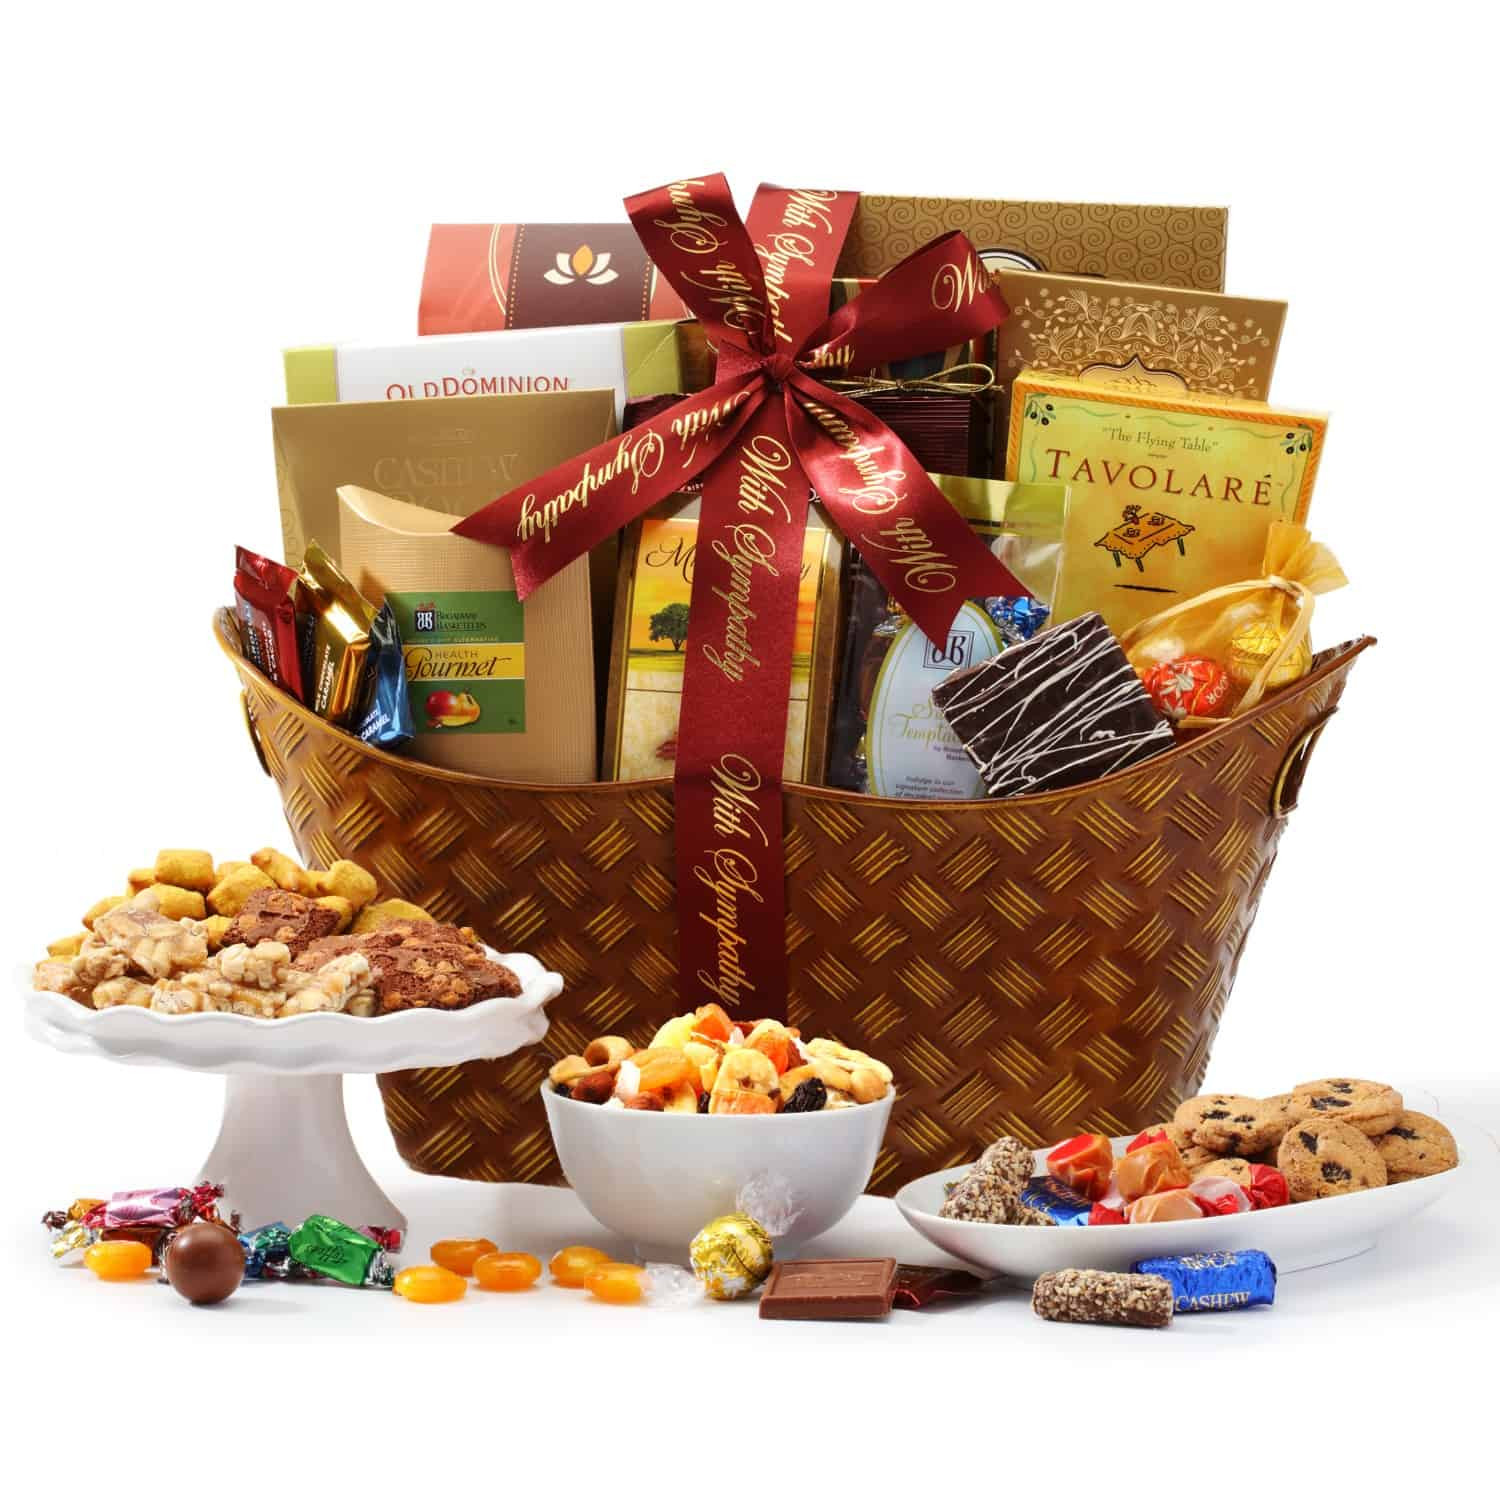 Gift Basket Ideas For Death In Family  With Sympathy Classic Gift Basket by BroadwayBasketeers